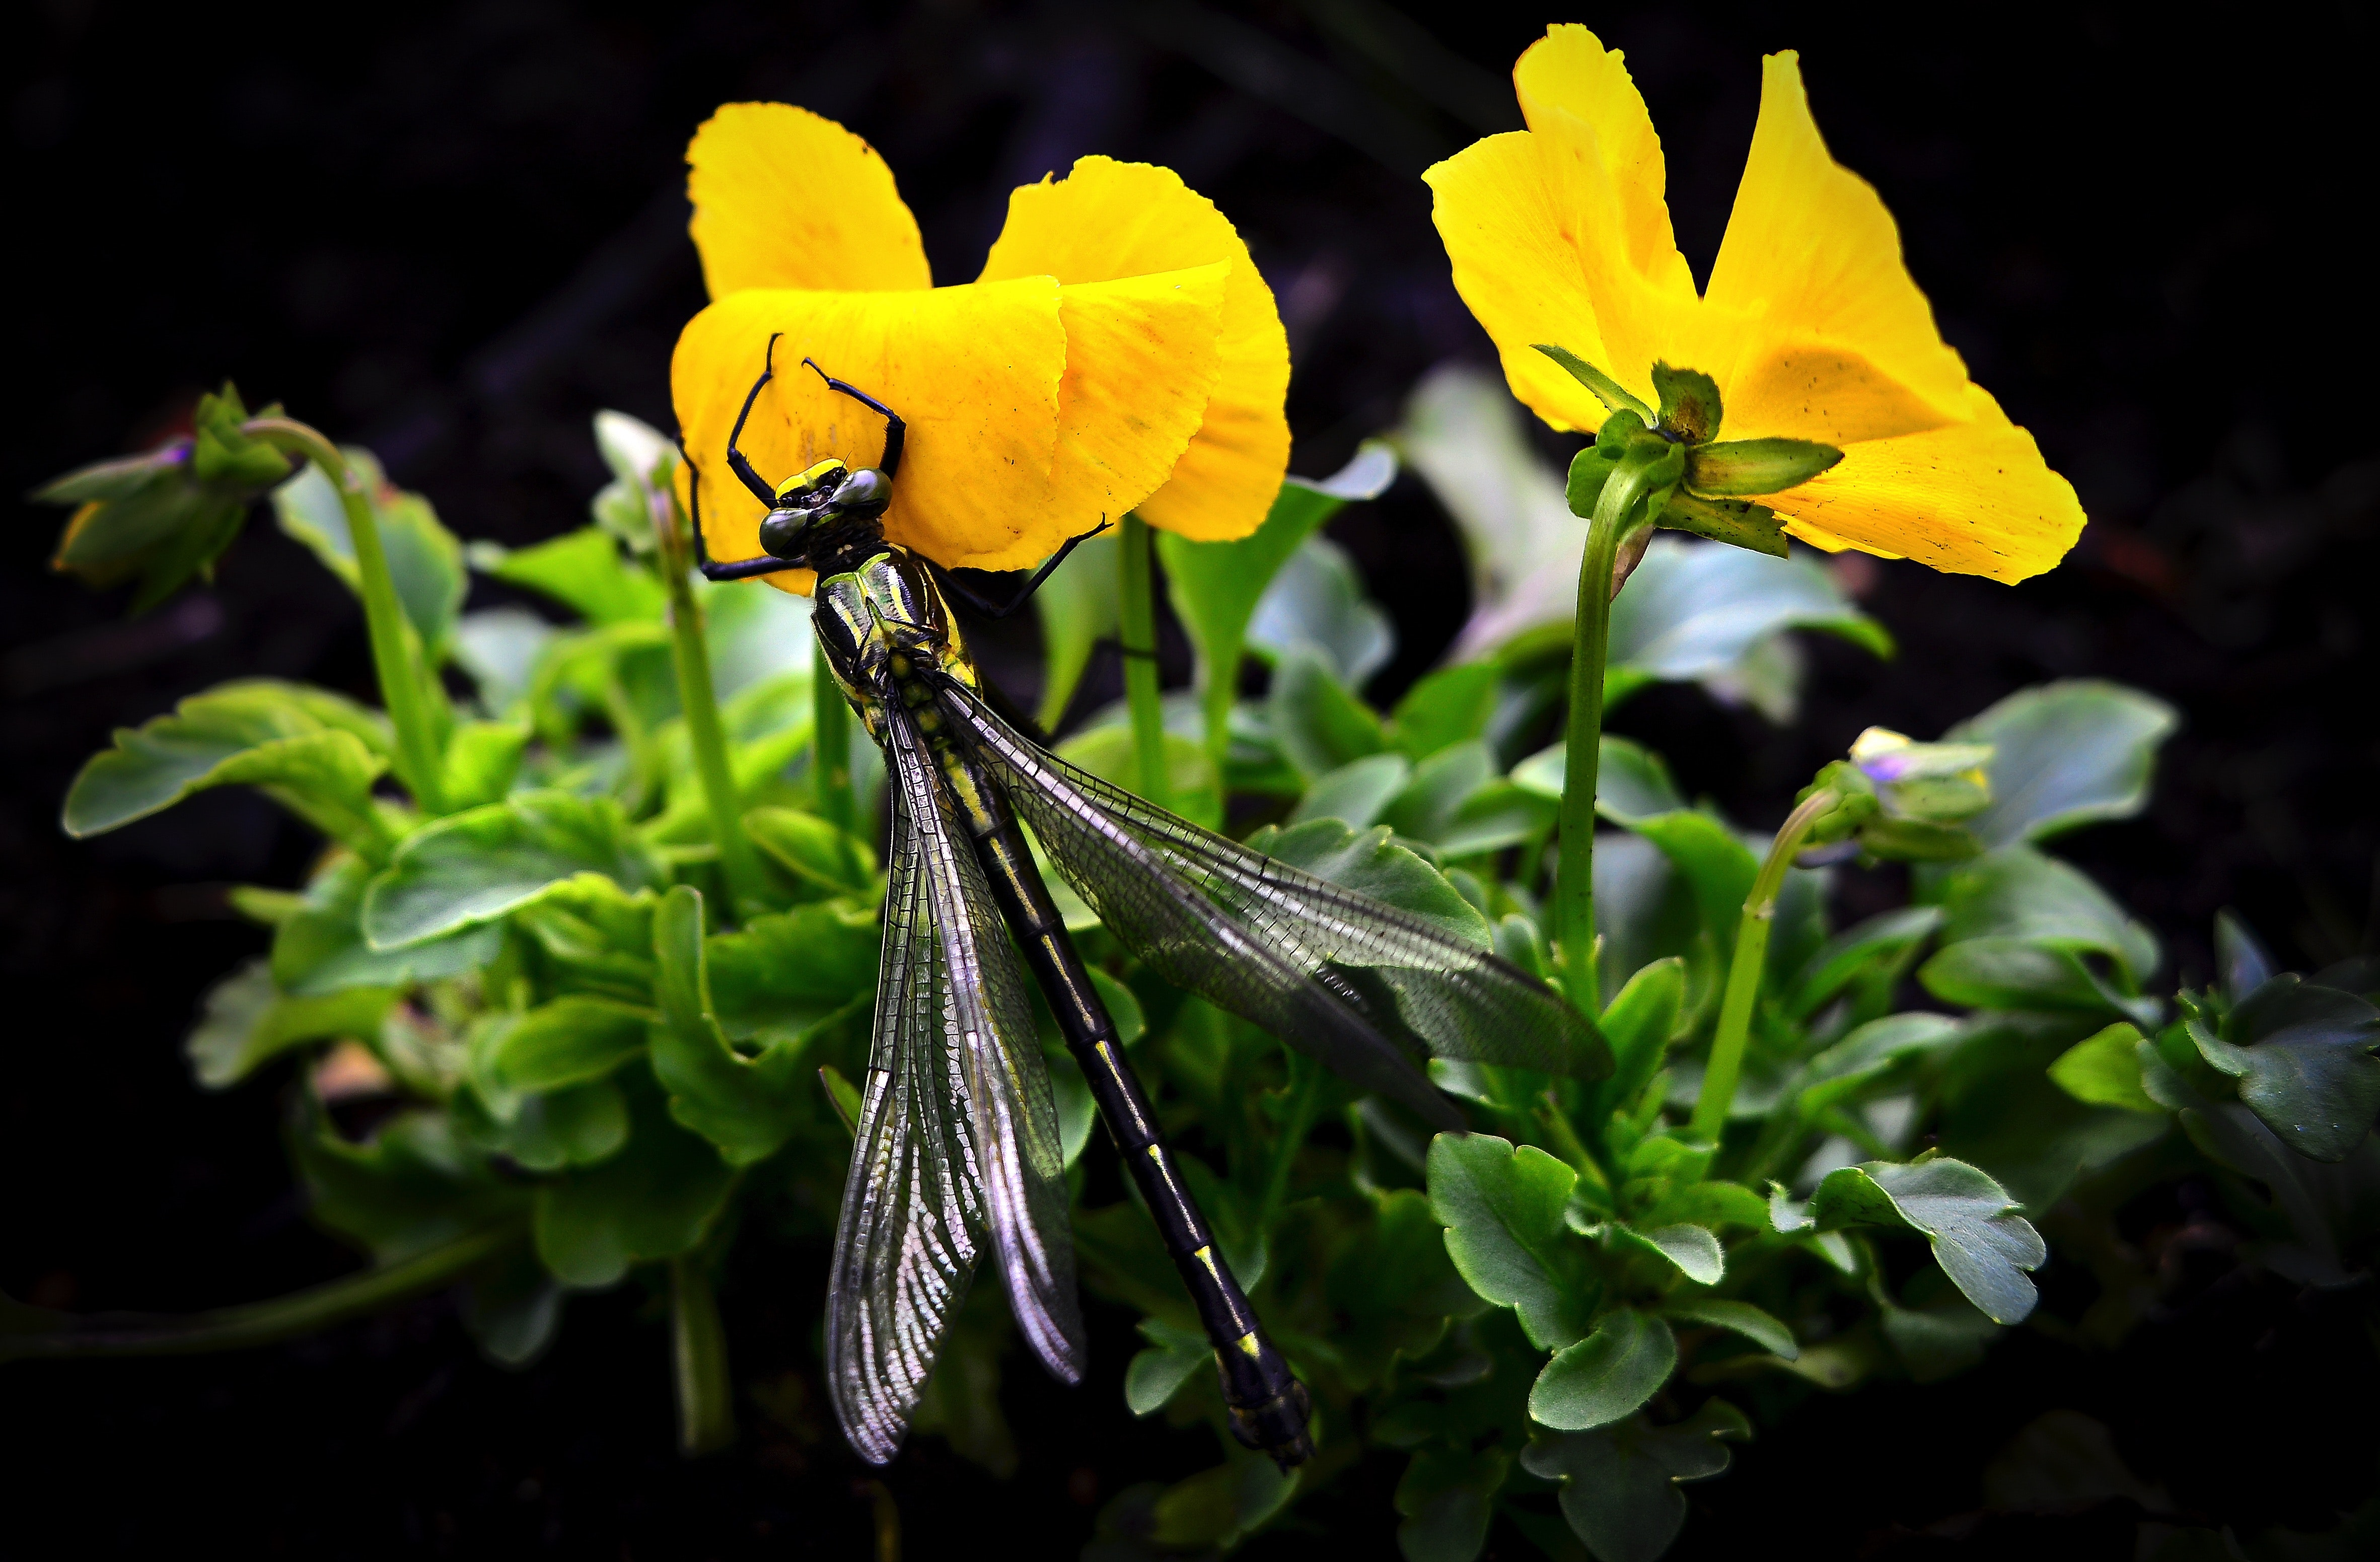 Dragonfly on yellow flowers photo